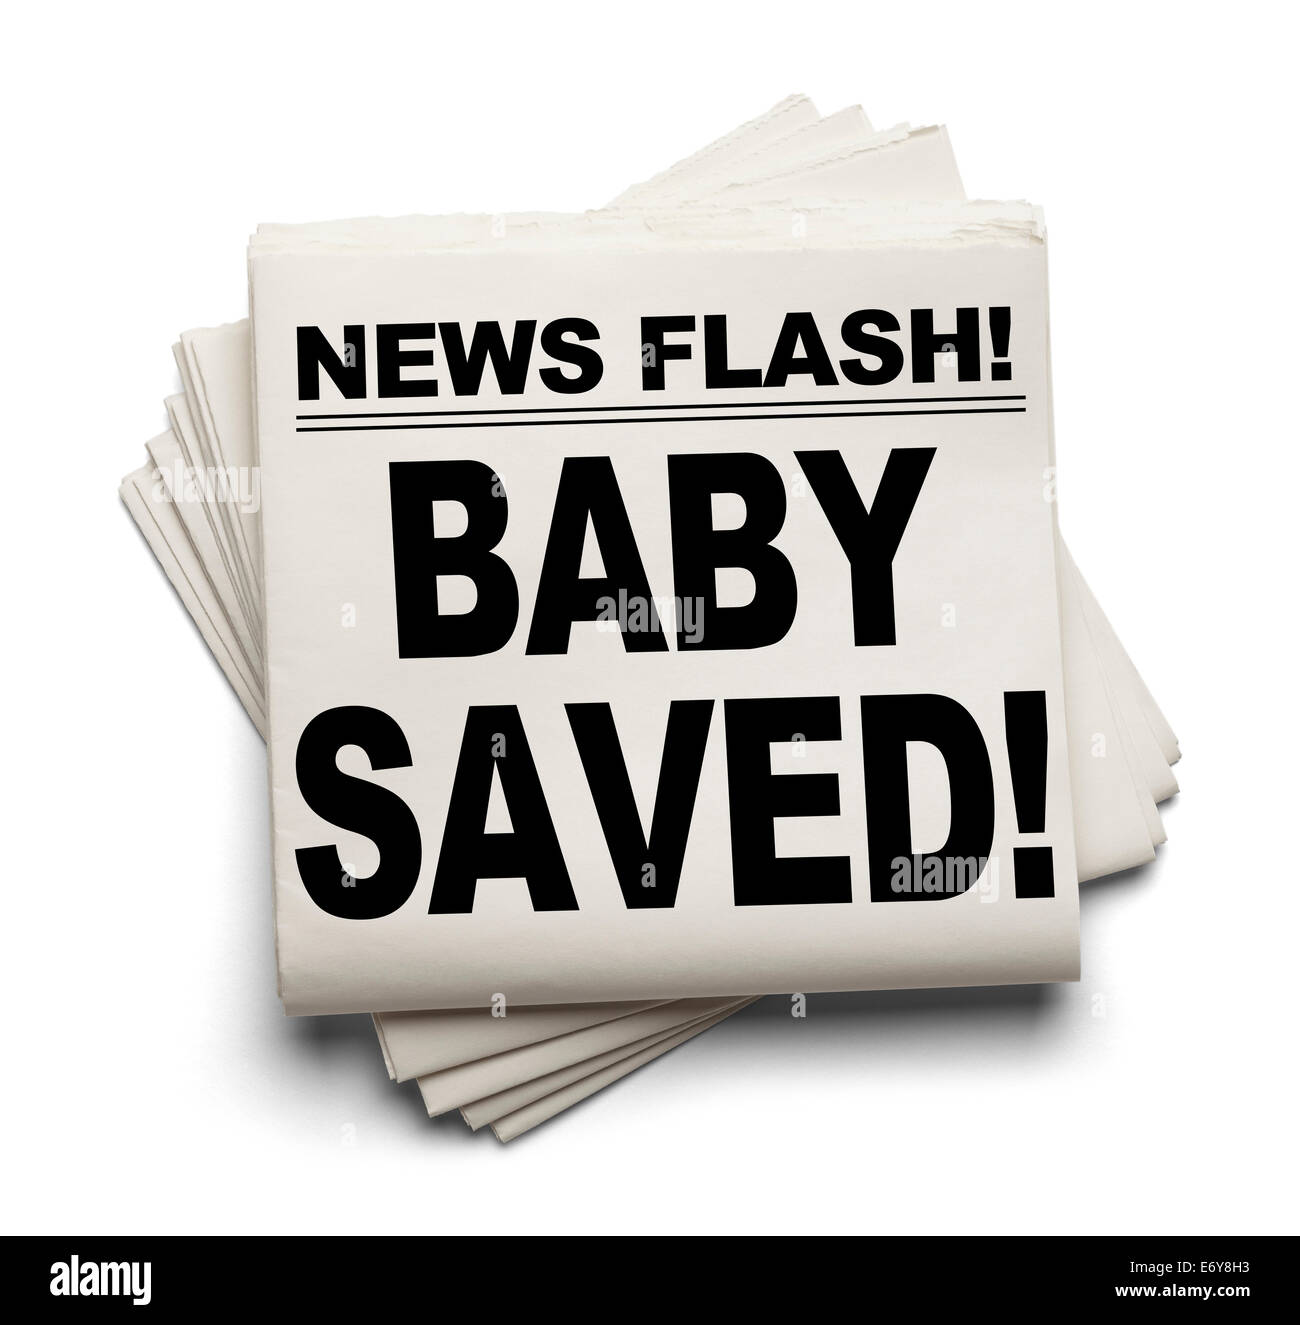 News Flash Baby Saved! News Paper Isolated on White Background. - Stock Image